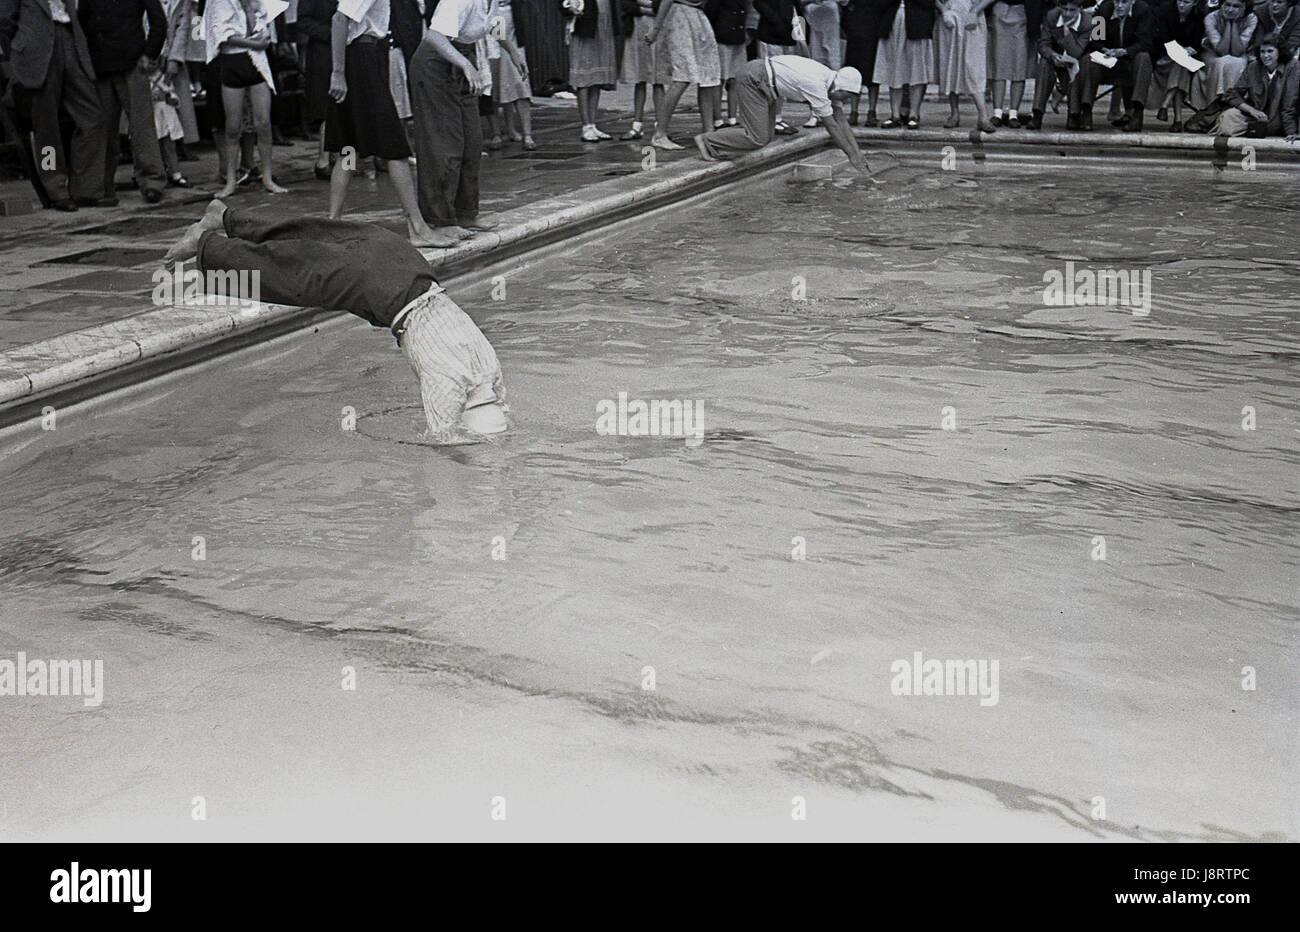 1950s, outdoor swimming gala, adult males taking part in a race, dive into the pool fully clothed wearing swimcaps, - Stock Image